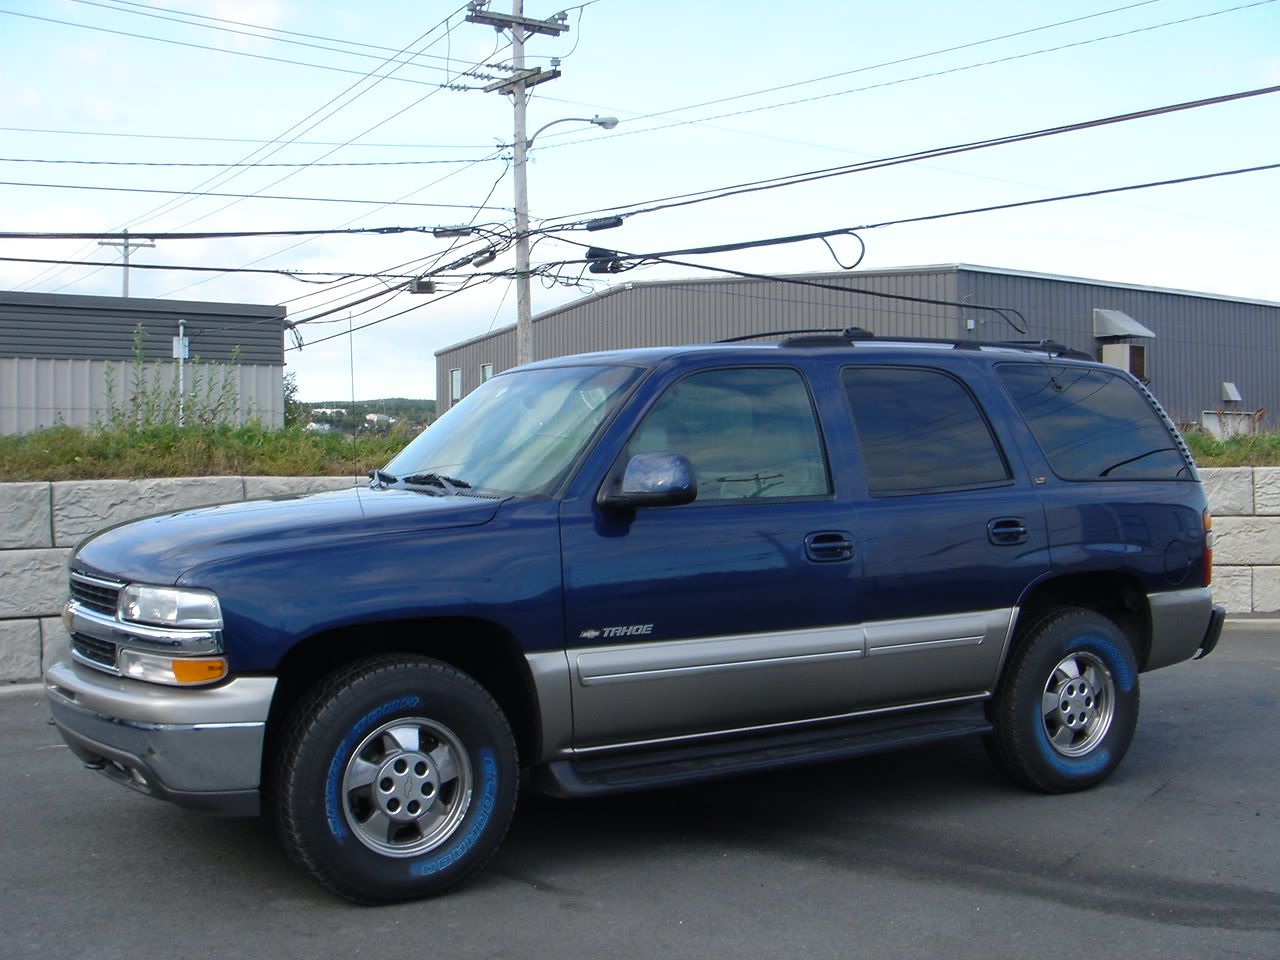 chevrolet tahoe 2003 review amazing pictures and images look at the car. Black Bedroom Furniture Sets. Home Design Ideas